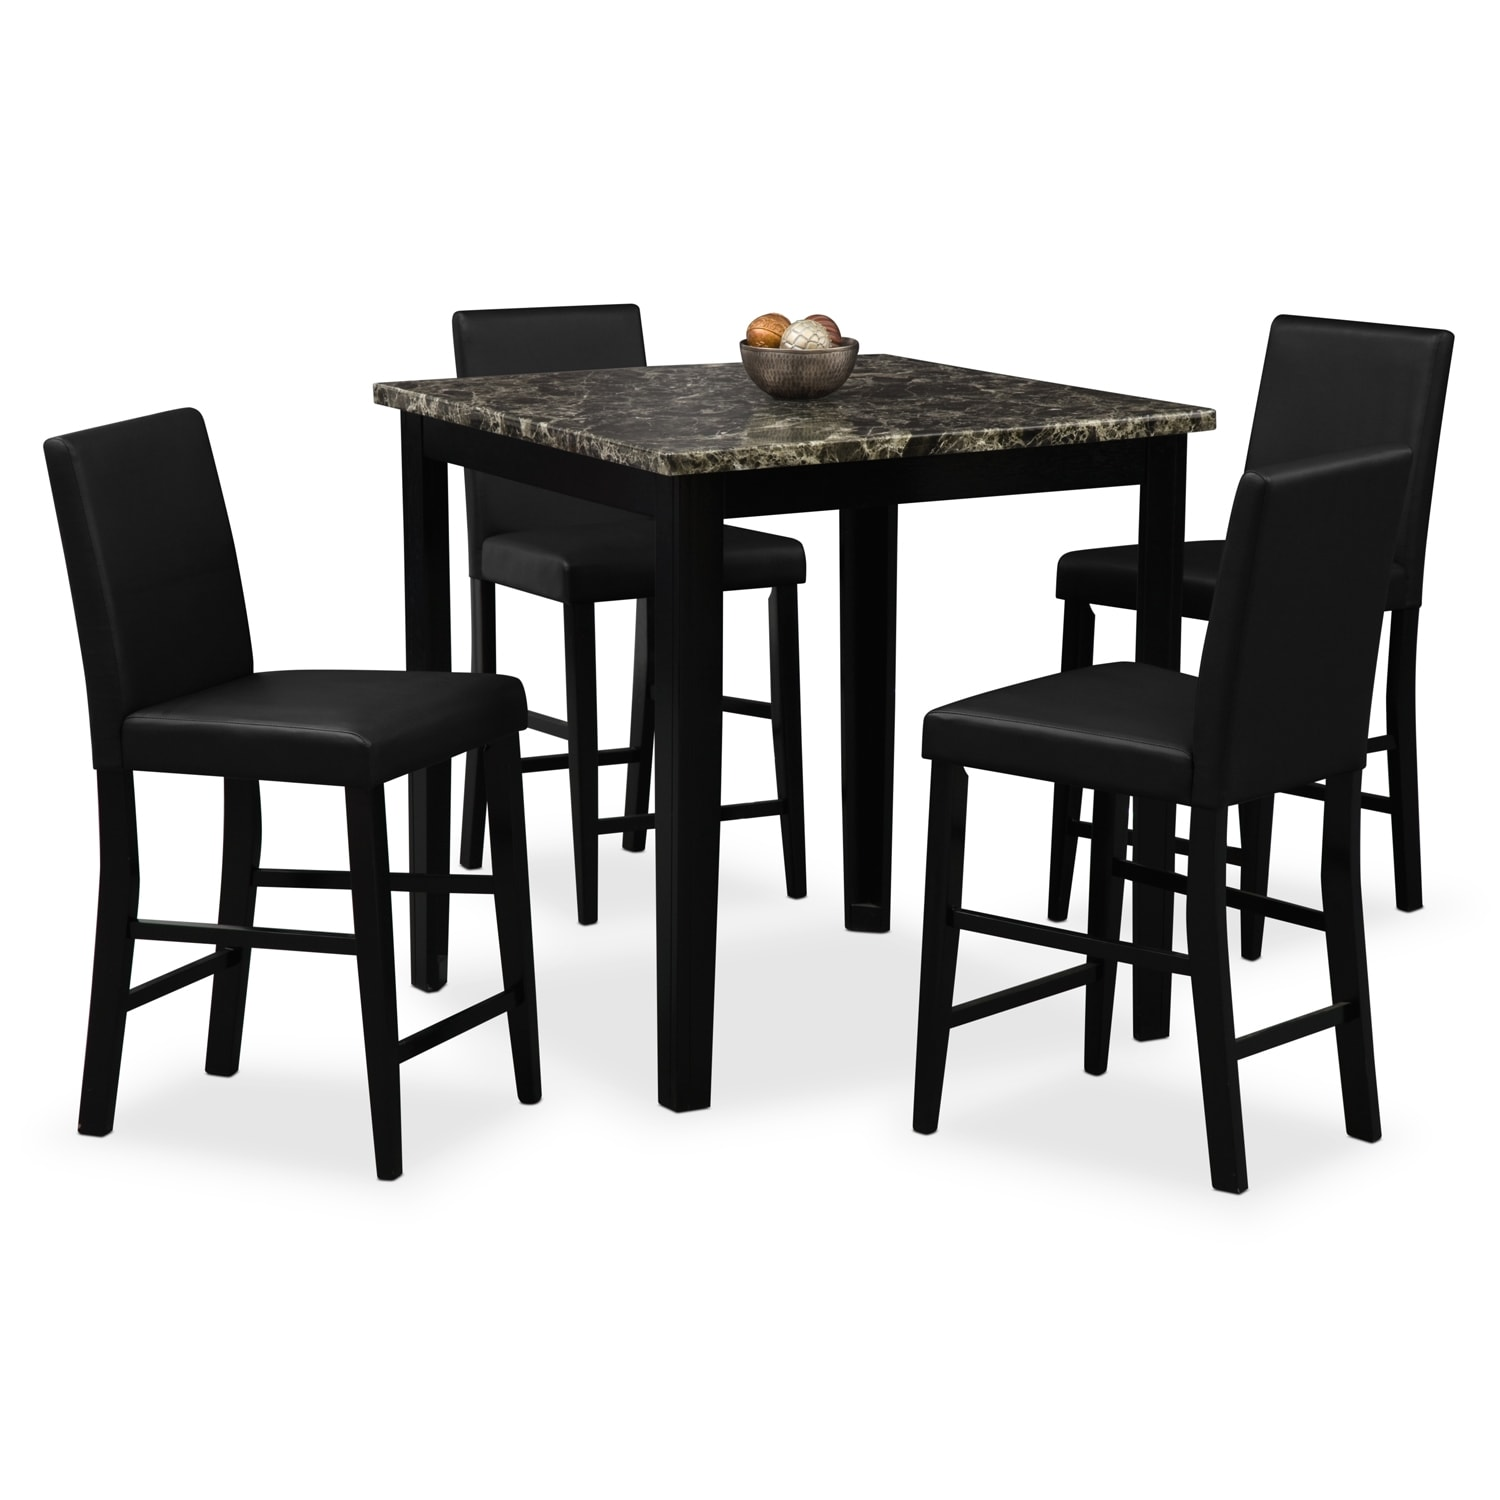 Shadow counter height table and 4 chairs black for Black dining table